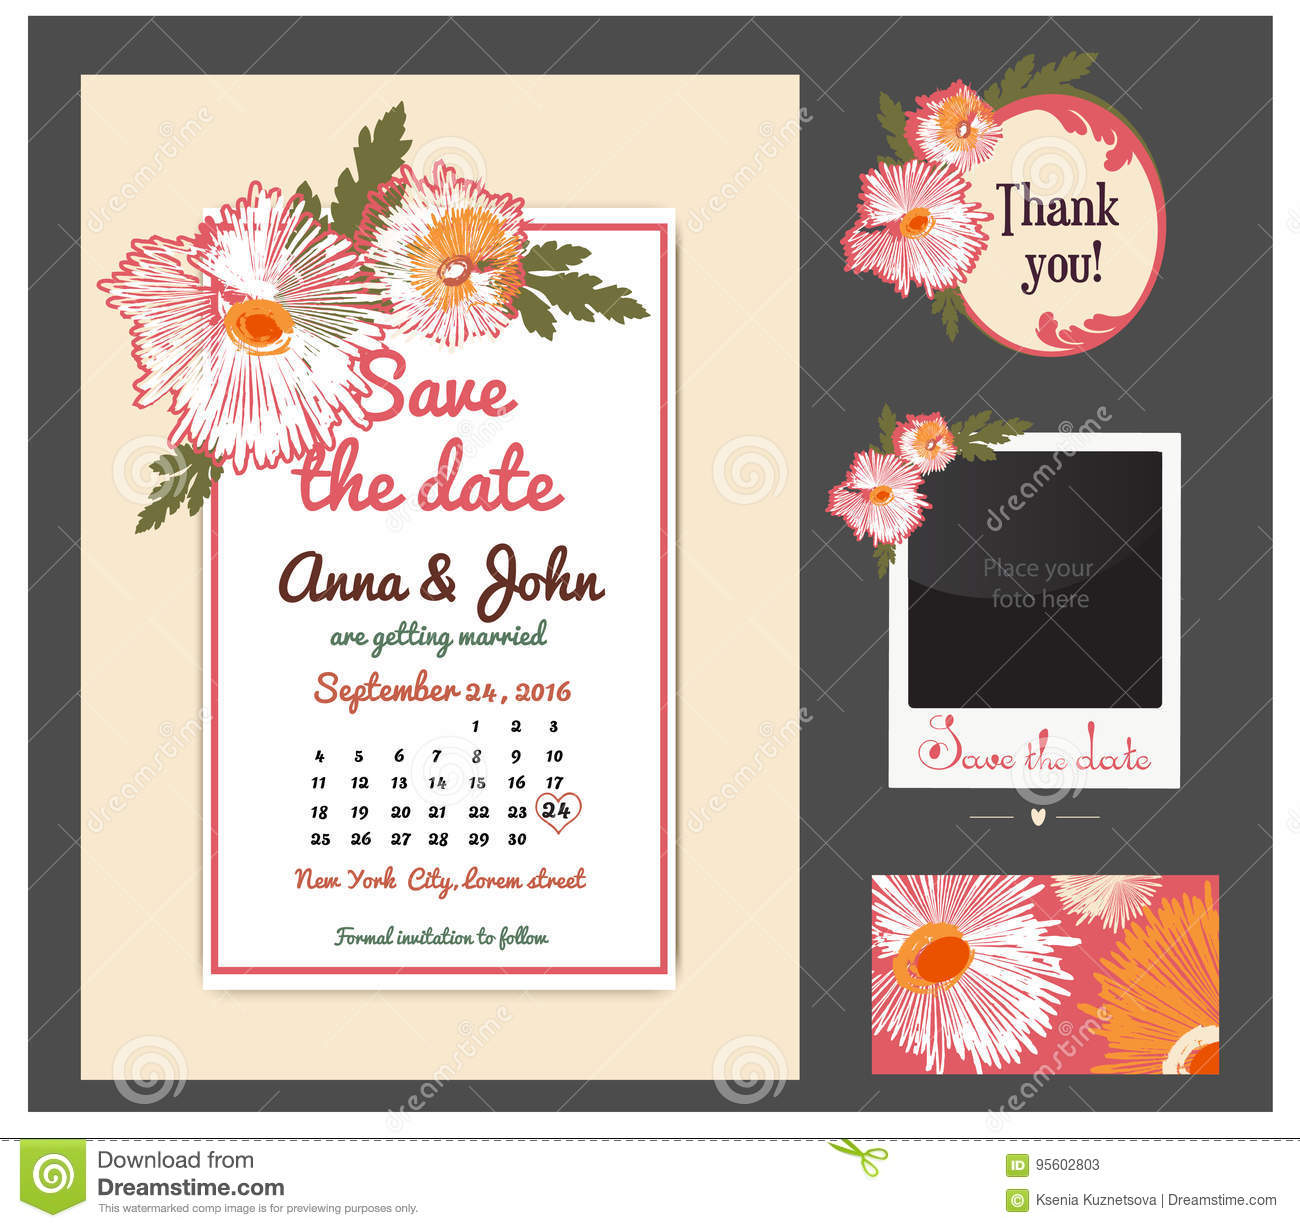 Vector Set Of Invitation Cards With Vintage Cards Or